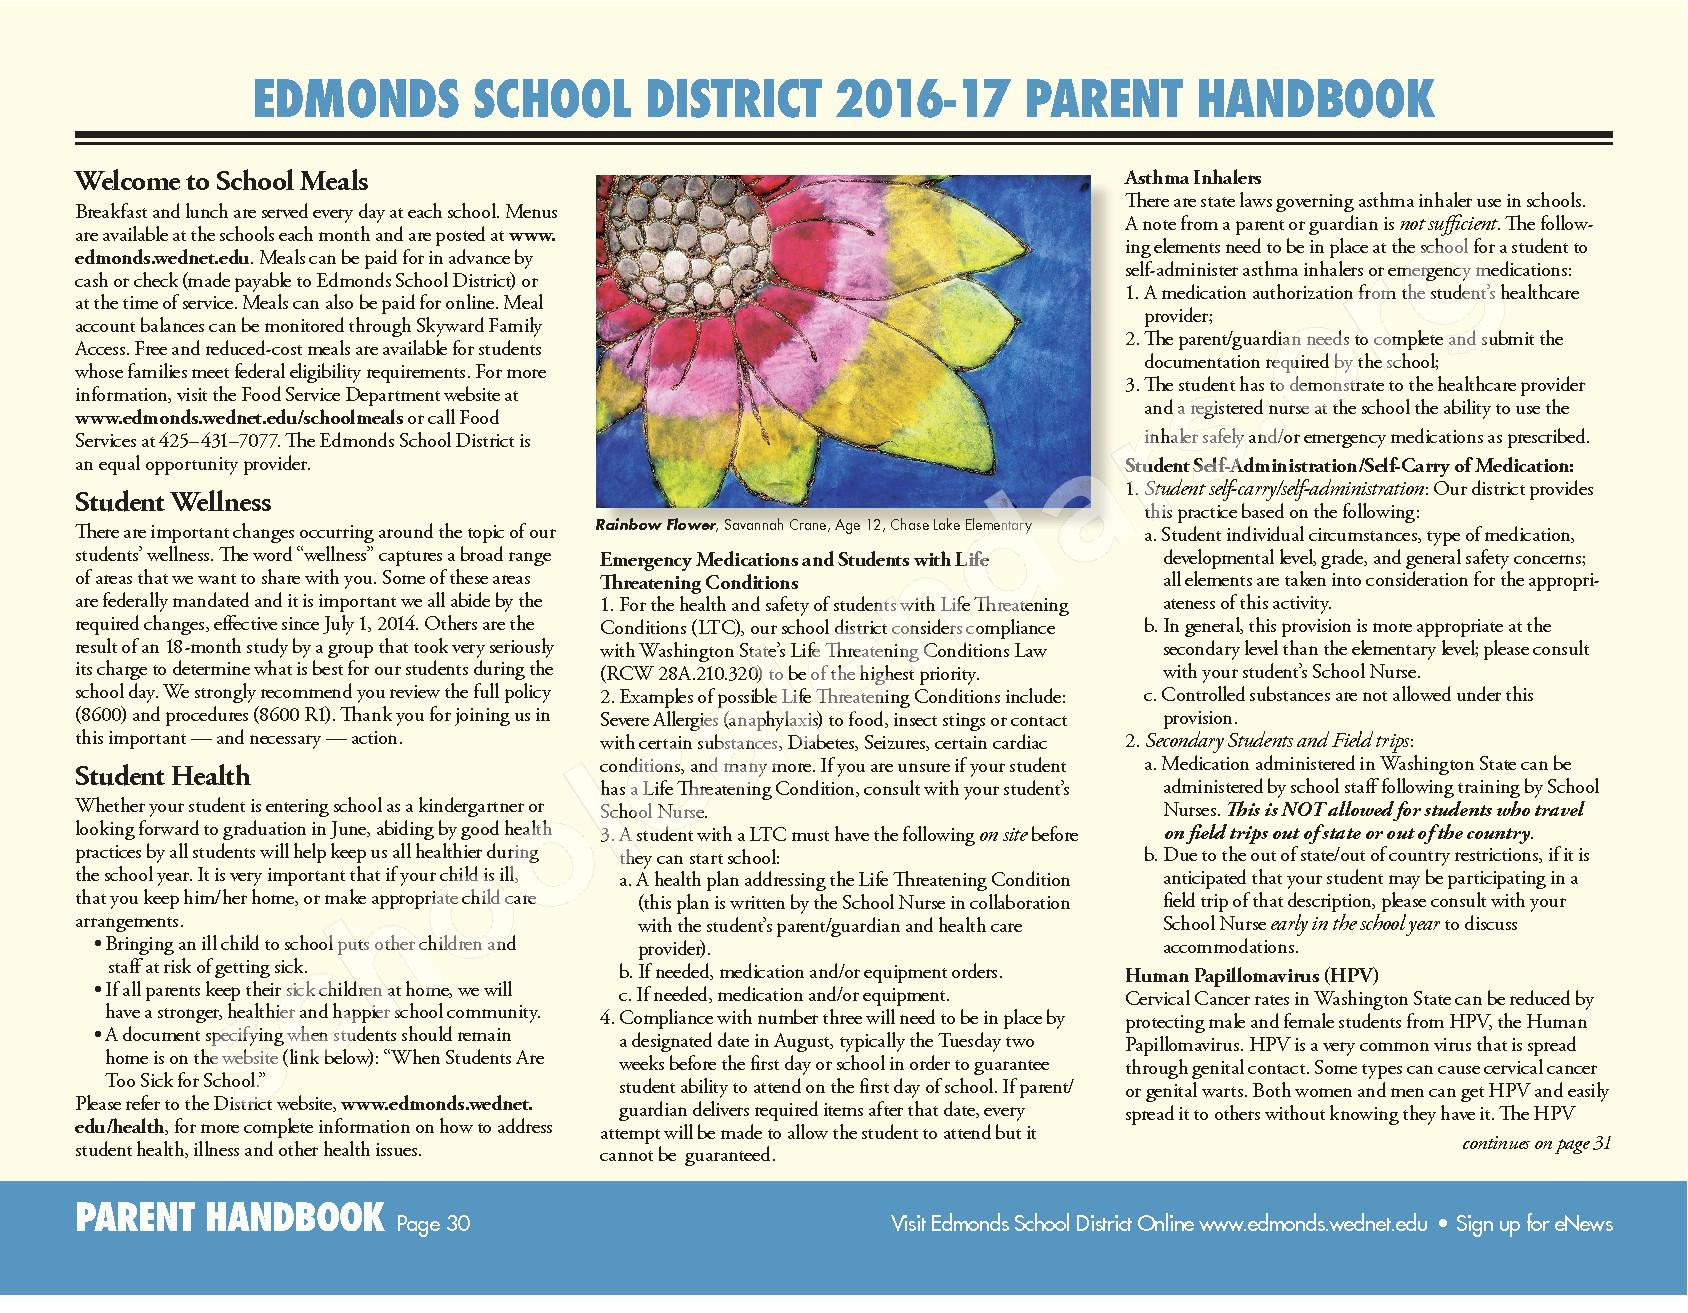 2016 - 2017 ESD Calendar and Parent Handbook – College Place Elementary School – page 30